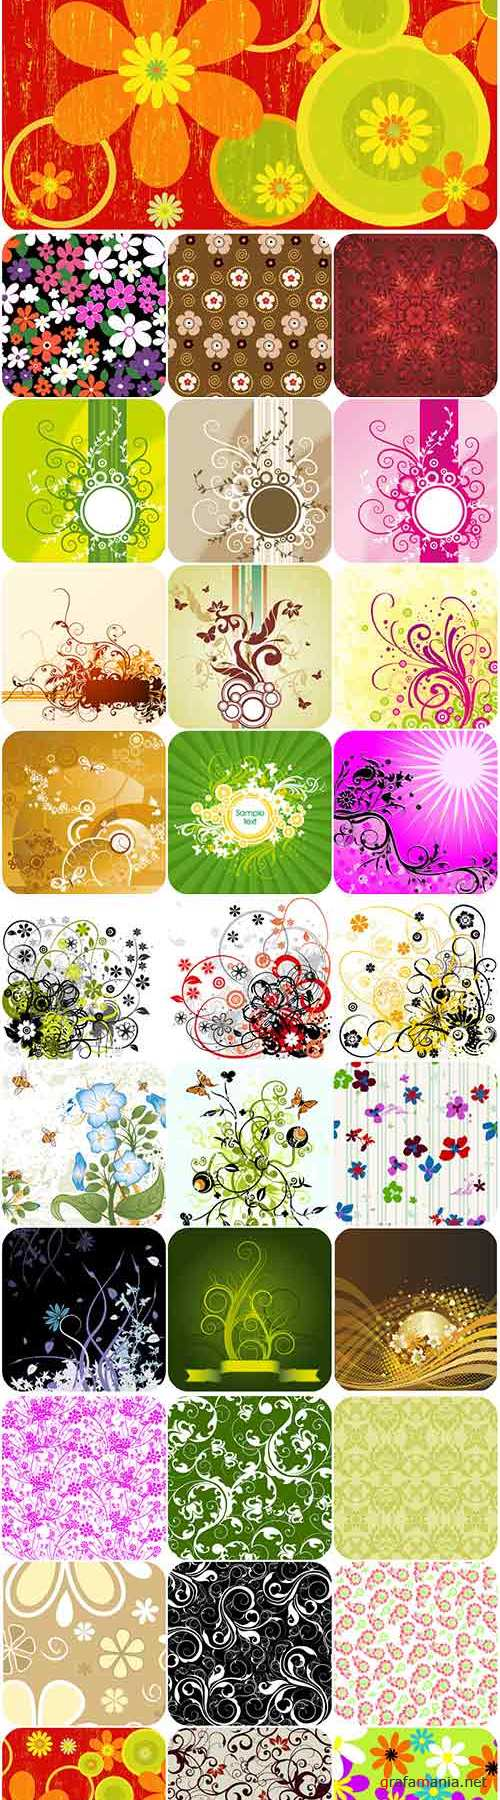 Floral patterns backgrounds stock vector - 4